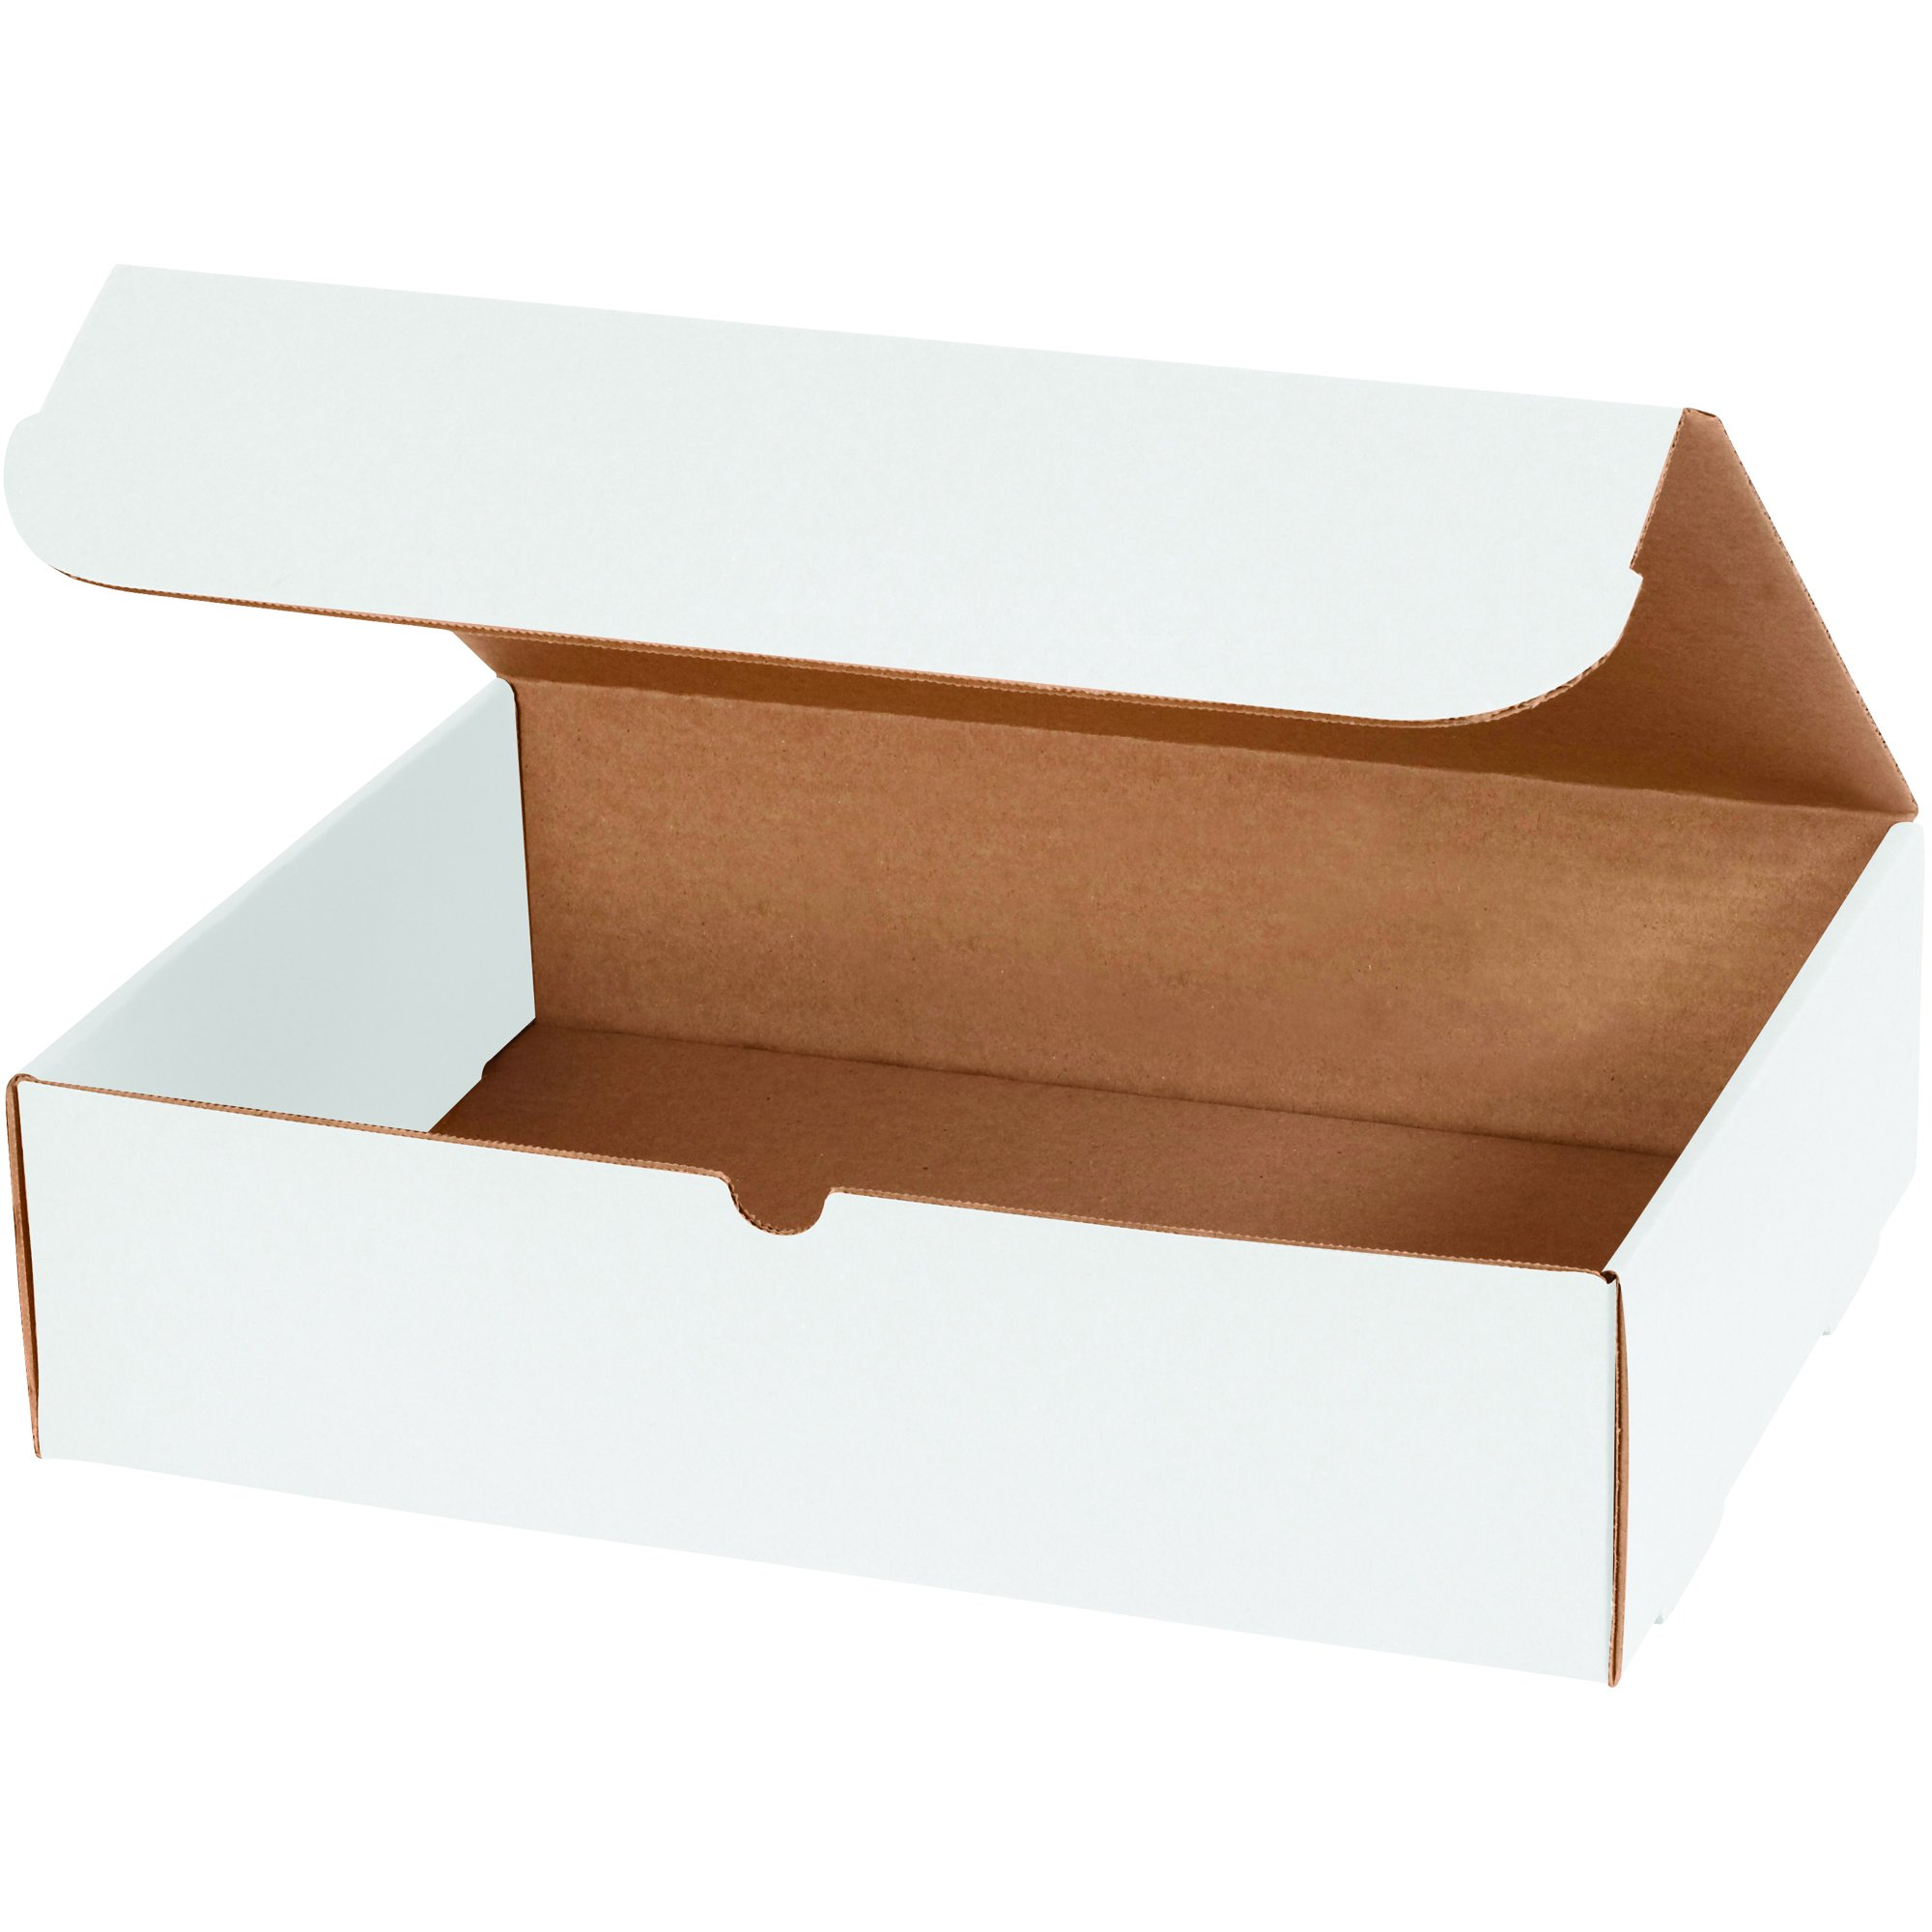 Boxes Fast BFMIBMS1000 Corrugated Cardboard Literature Mailers, 15 1/8 x 11 1/8 x 4 Inches, Tuck Top One-Piece, Die-Cut Shipping Boxes, Large White Mailing Boxes (Pack of 50)